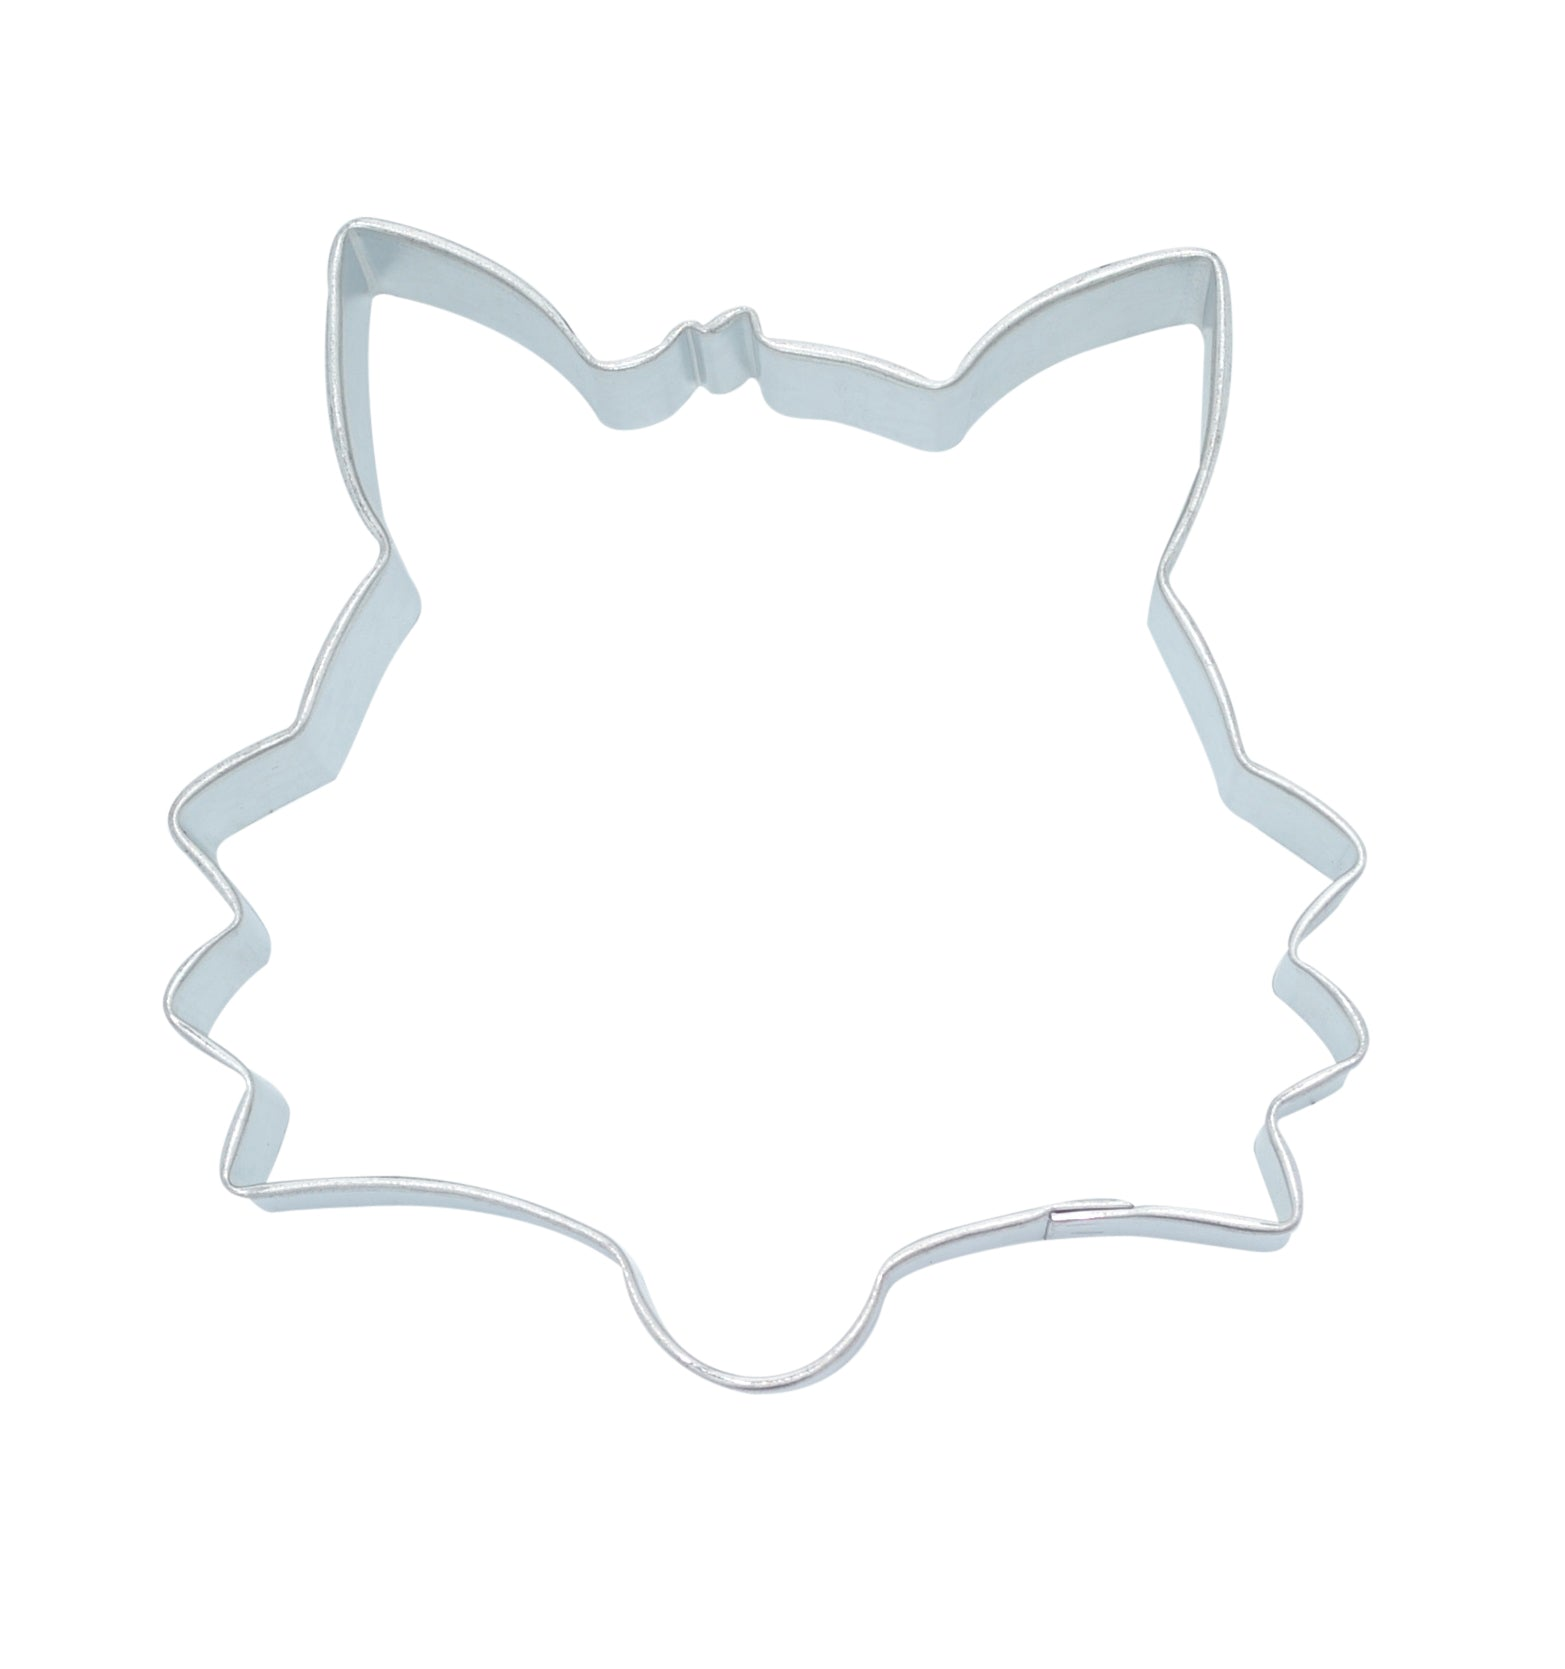 Fox Face 8.5cm Cookie Cutter | Cookie Cutter Shop Australia